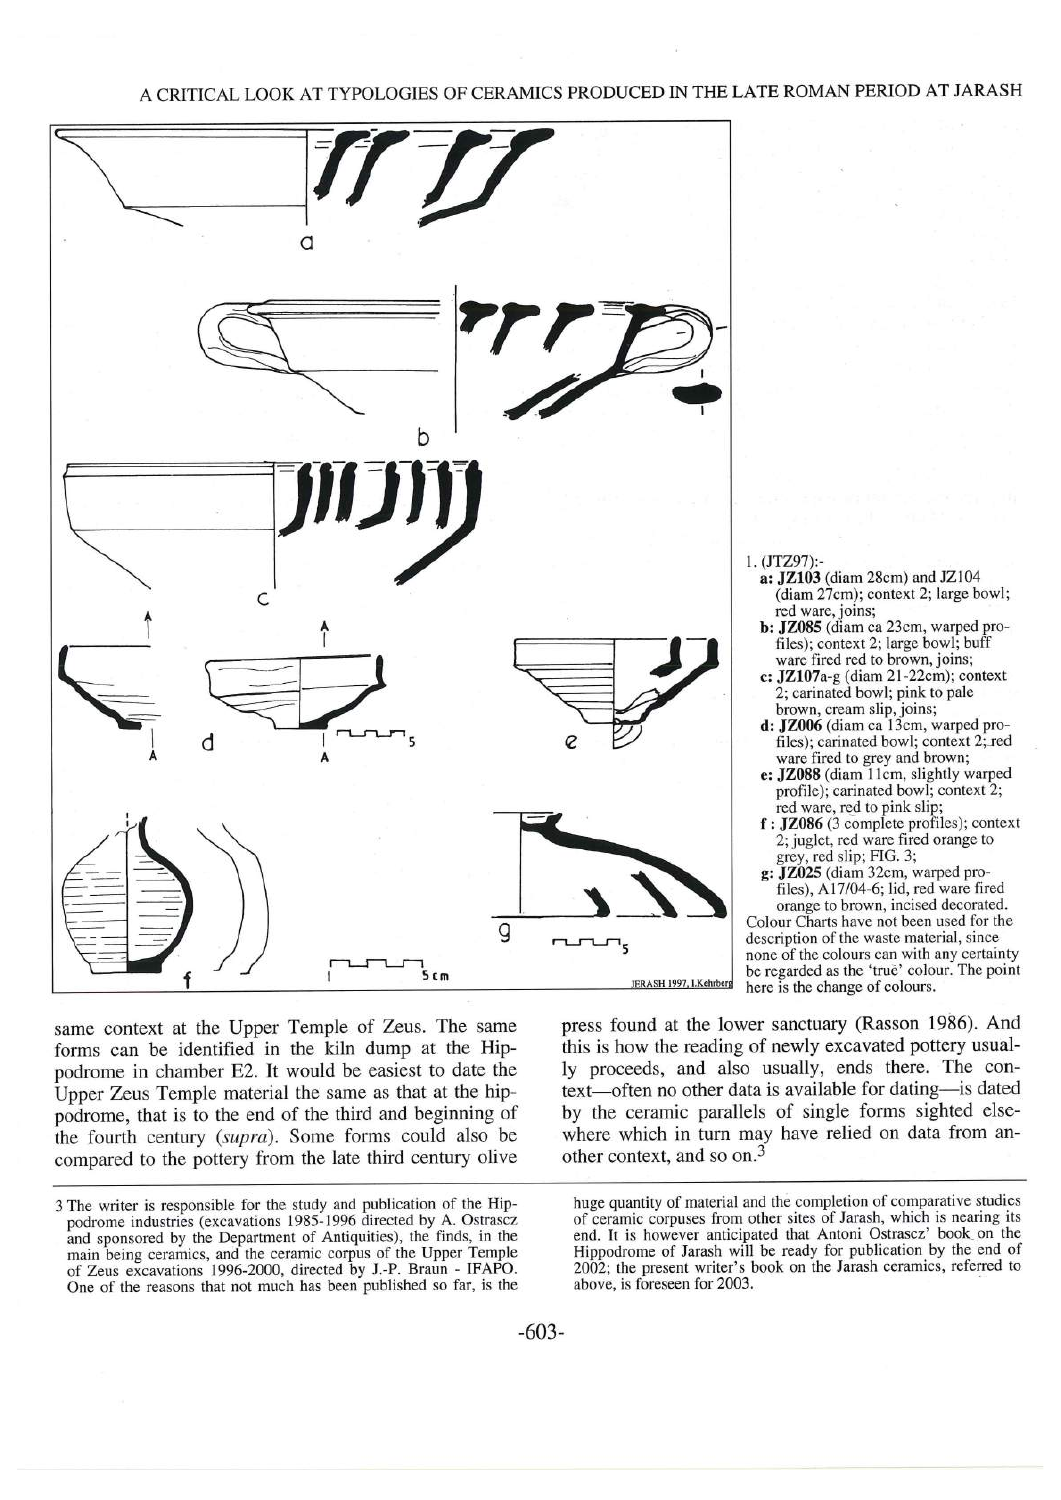 A critical look at typologies of ceramics produced in the late